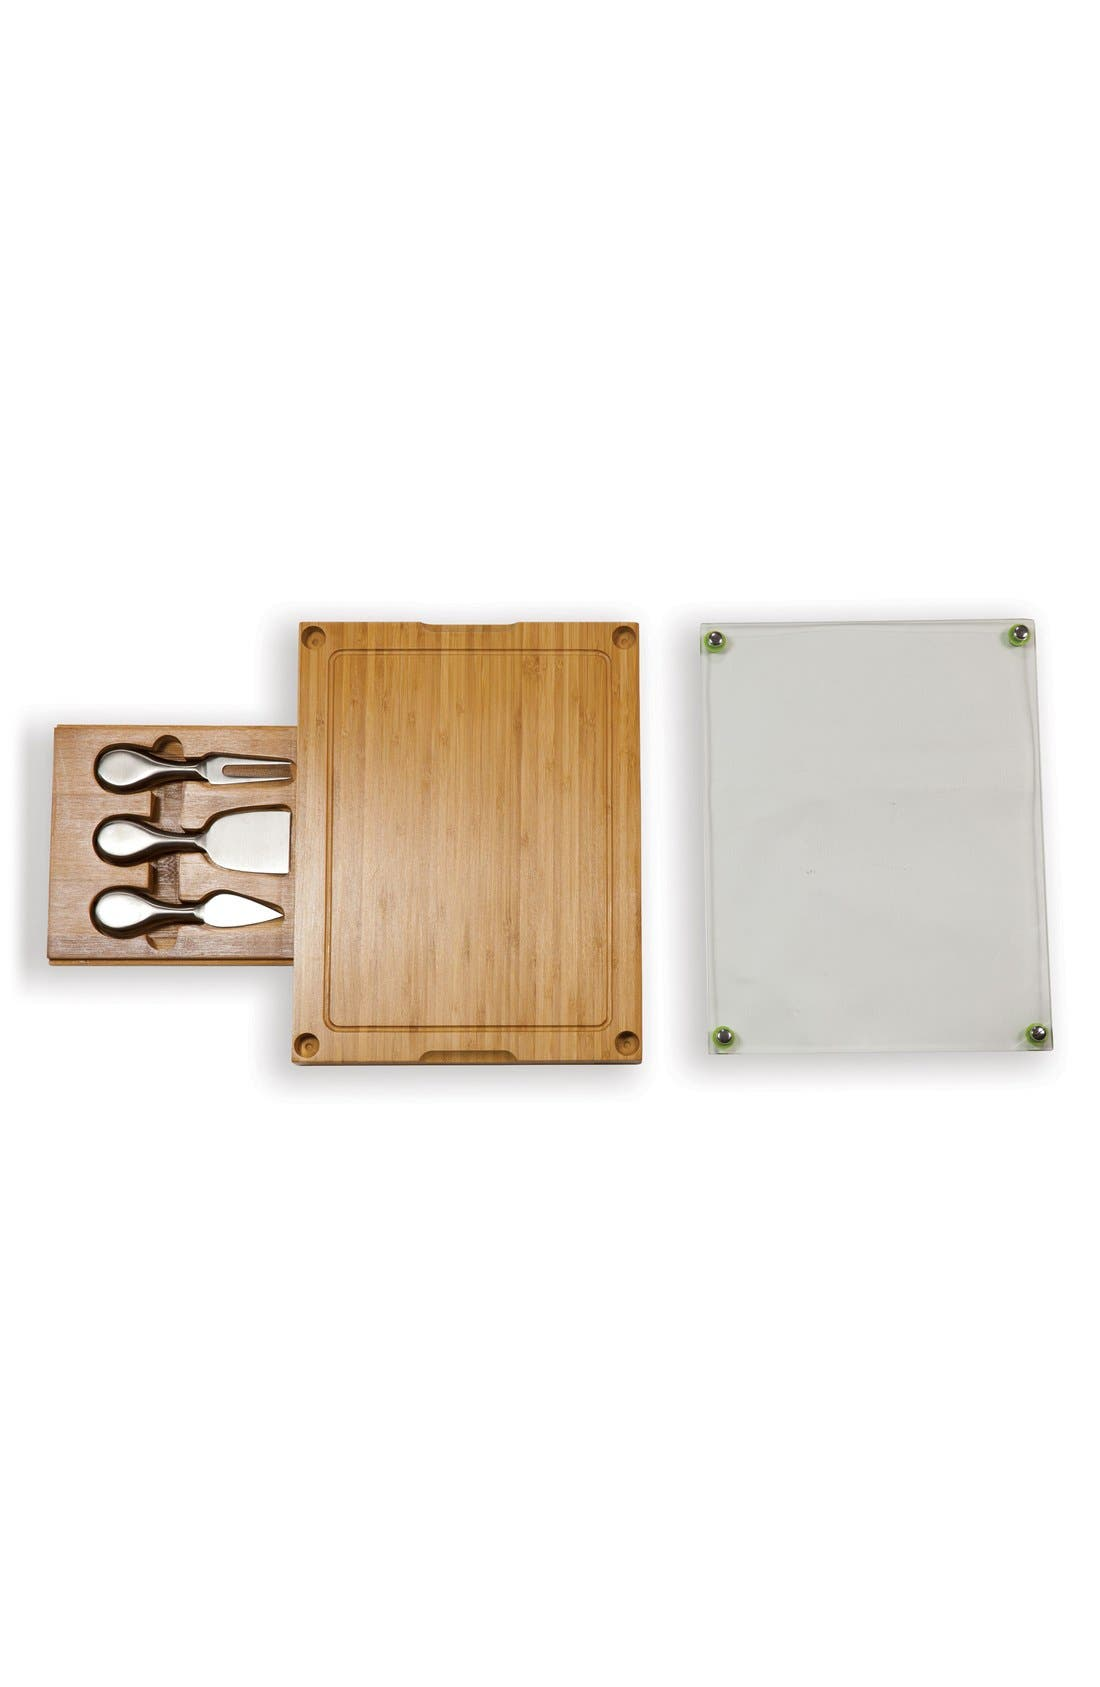 'Concerto' Cutting Board Set,                             Alternate thumbnail 4, color,                             200